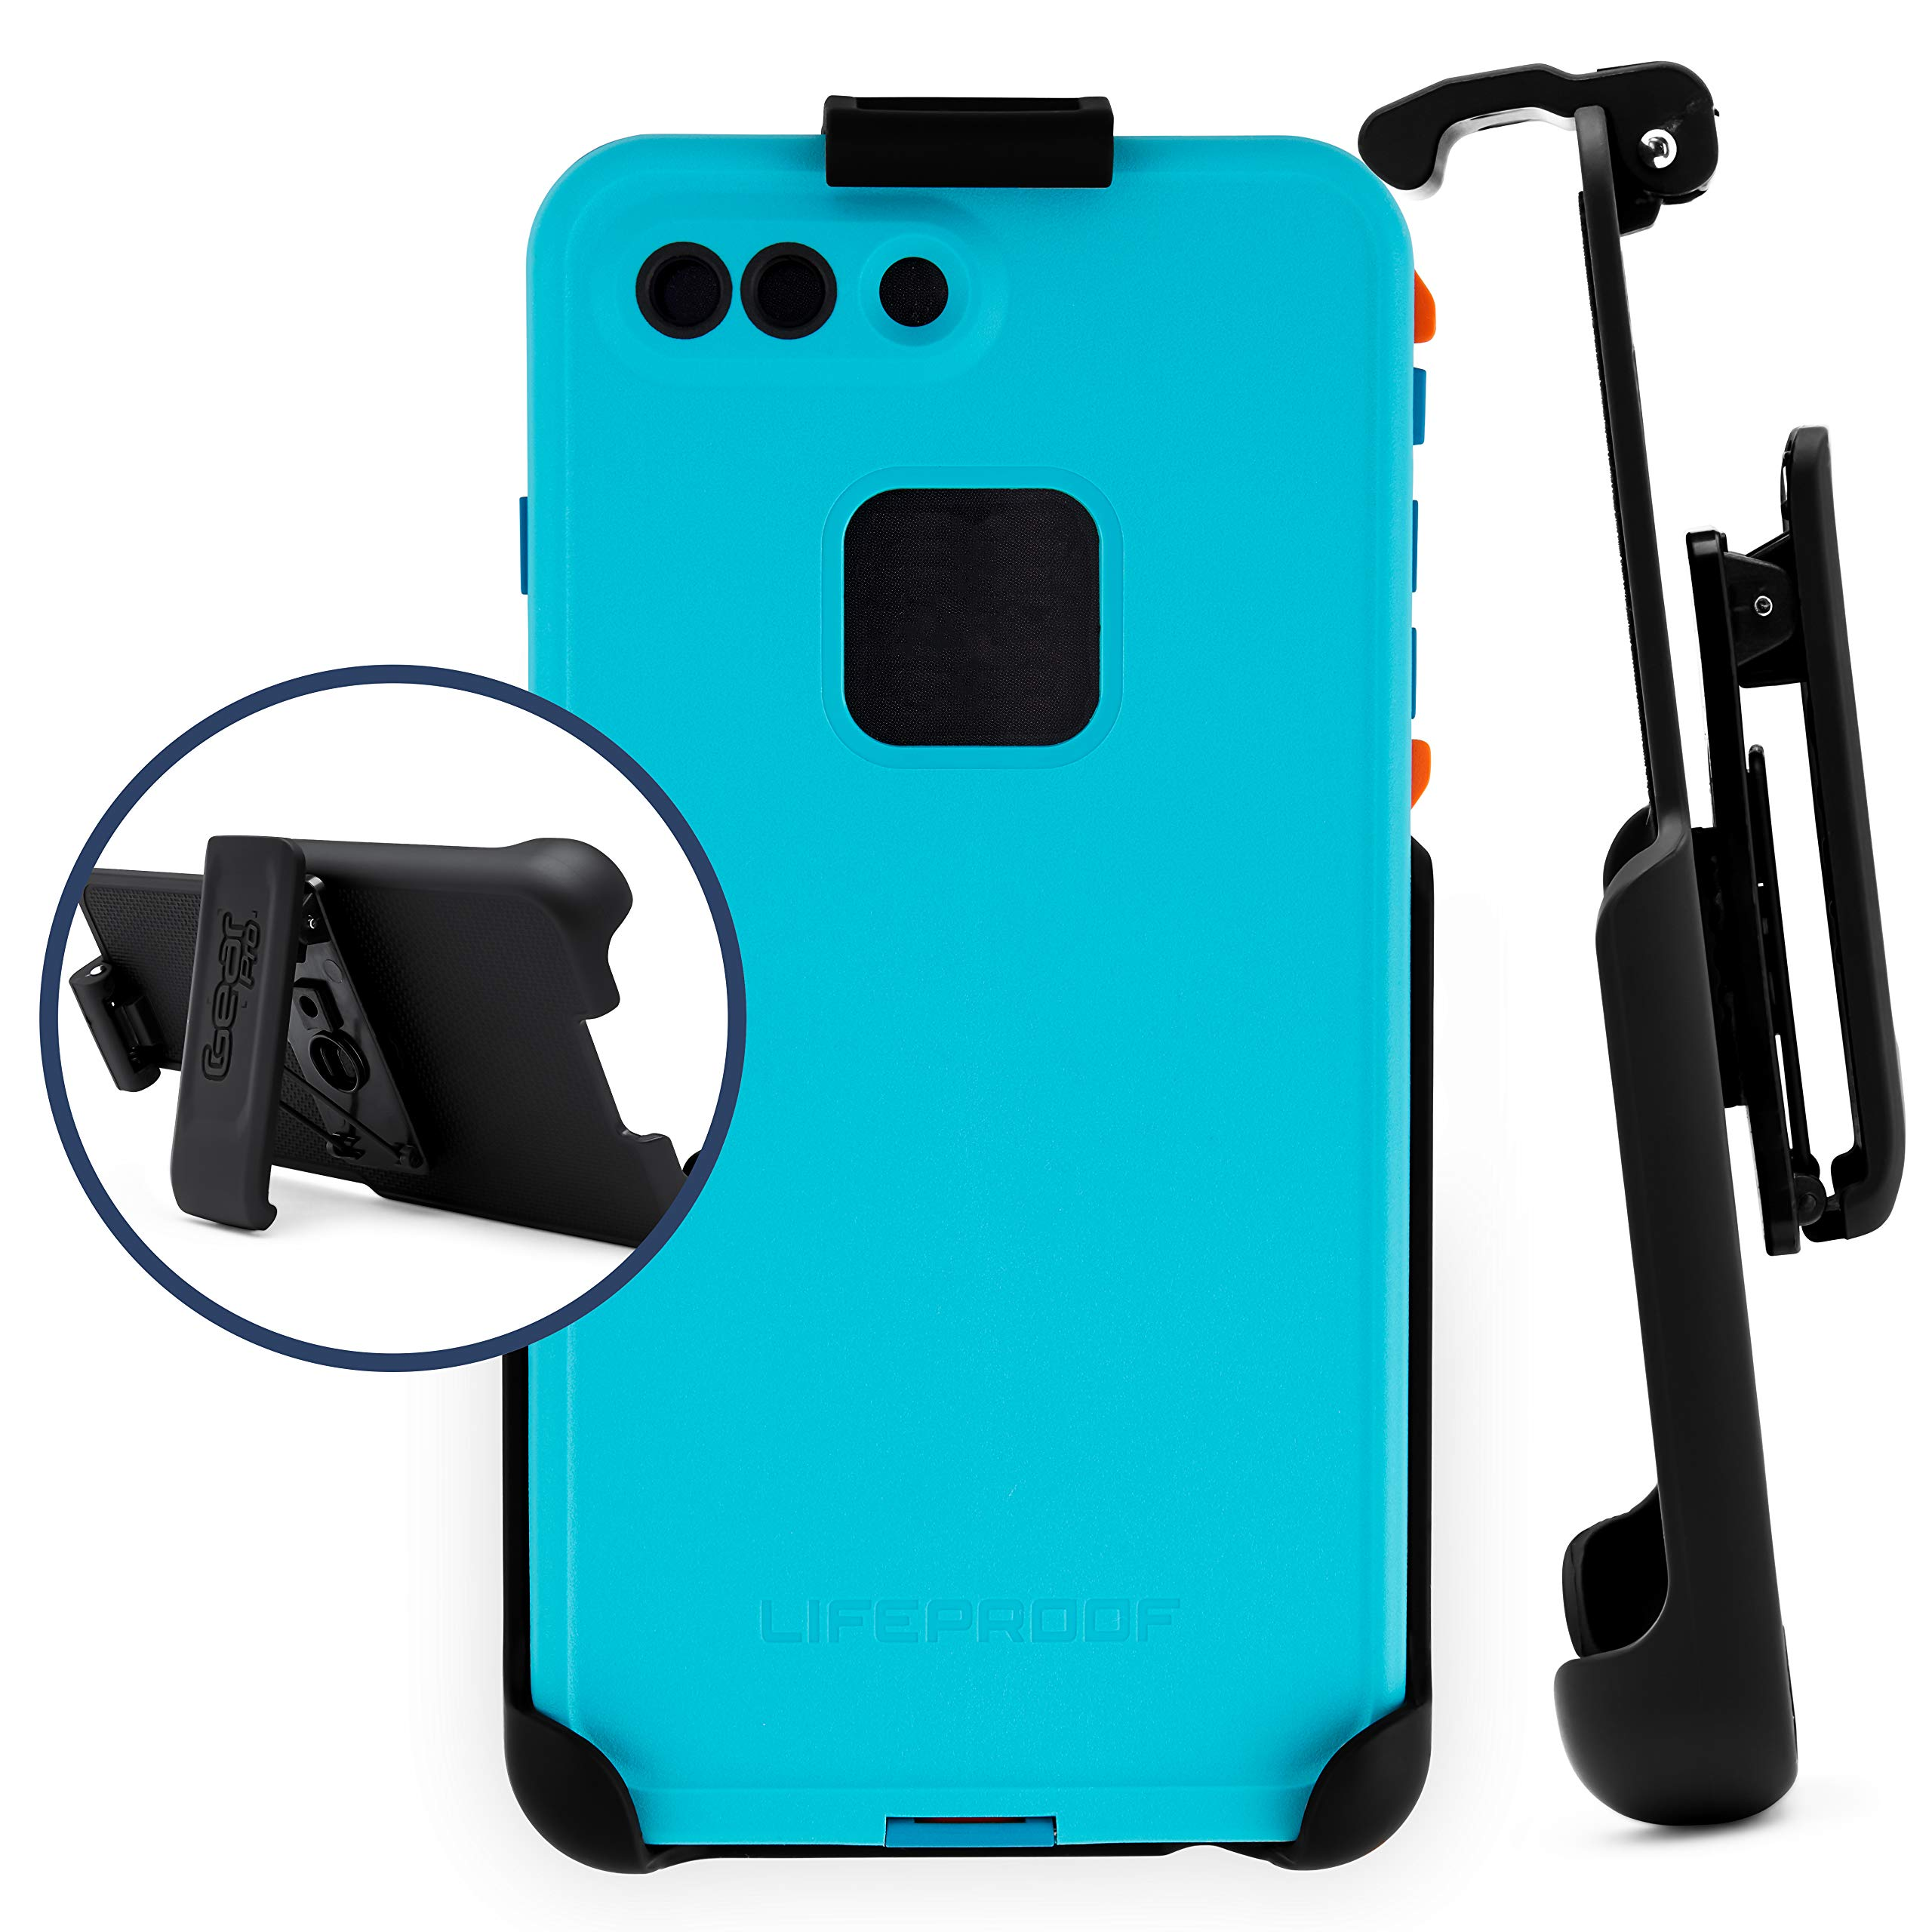 Belt Clip Holster Compatible with LifeProof FRE Series - iPhone 6plus, 6s Plus, 7 Plus, 8 Plus   Easy Fit   Slim Design   Built in Kickstand [case not Included]